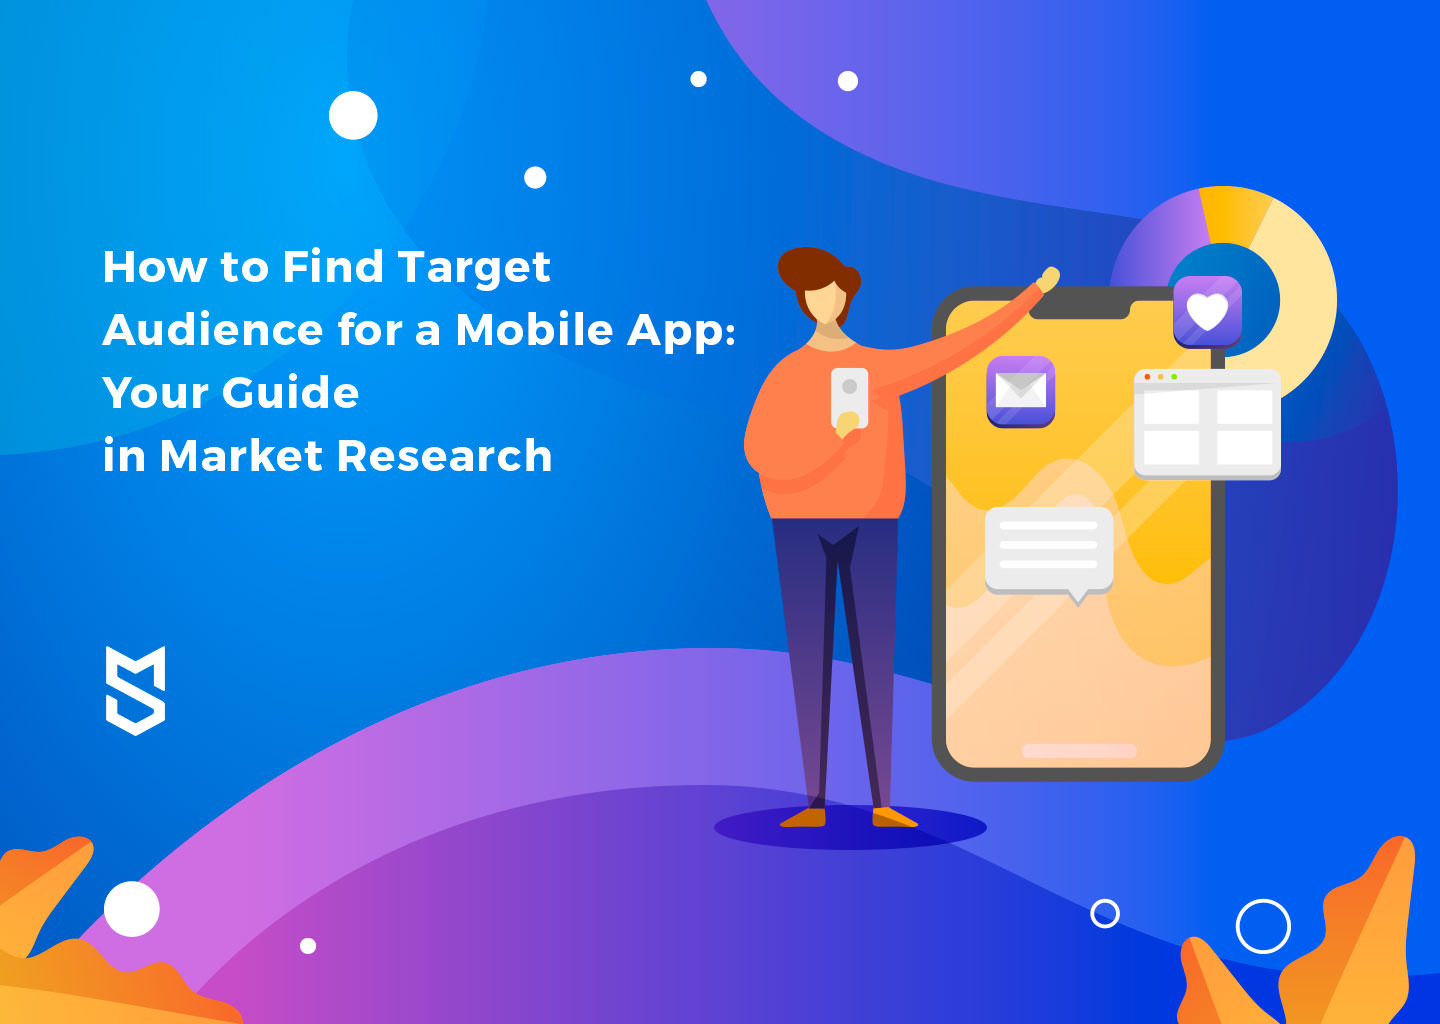 How to Find the Target Audience for a Mobile App: Your Guide to Market Research